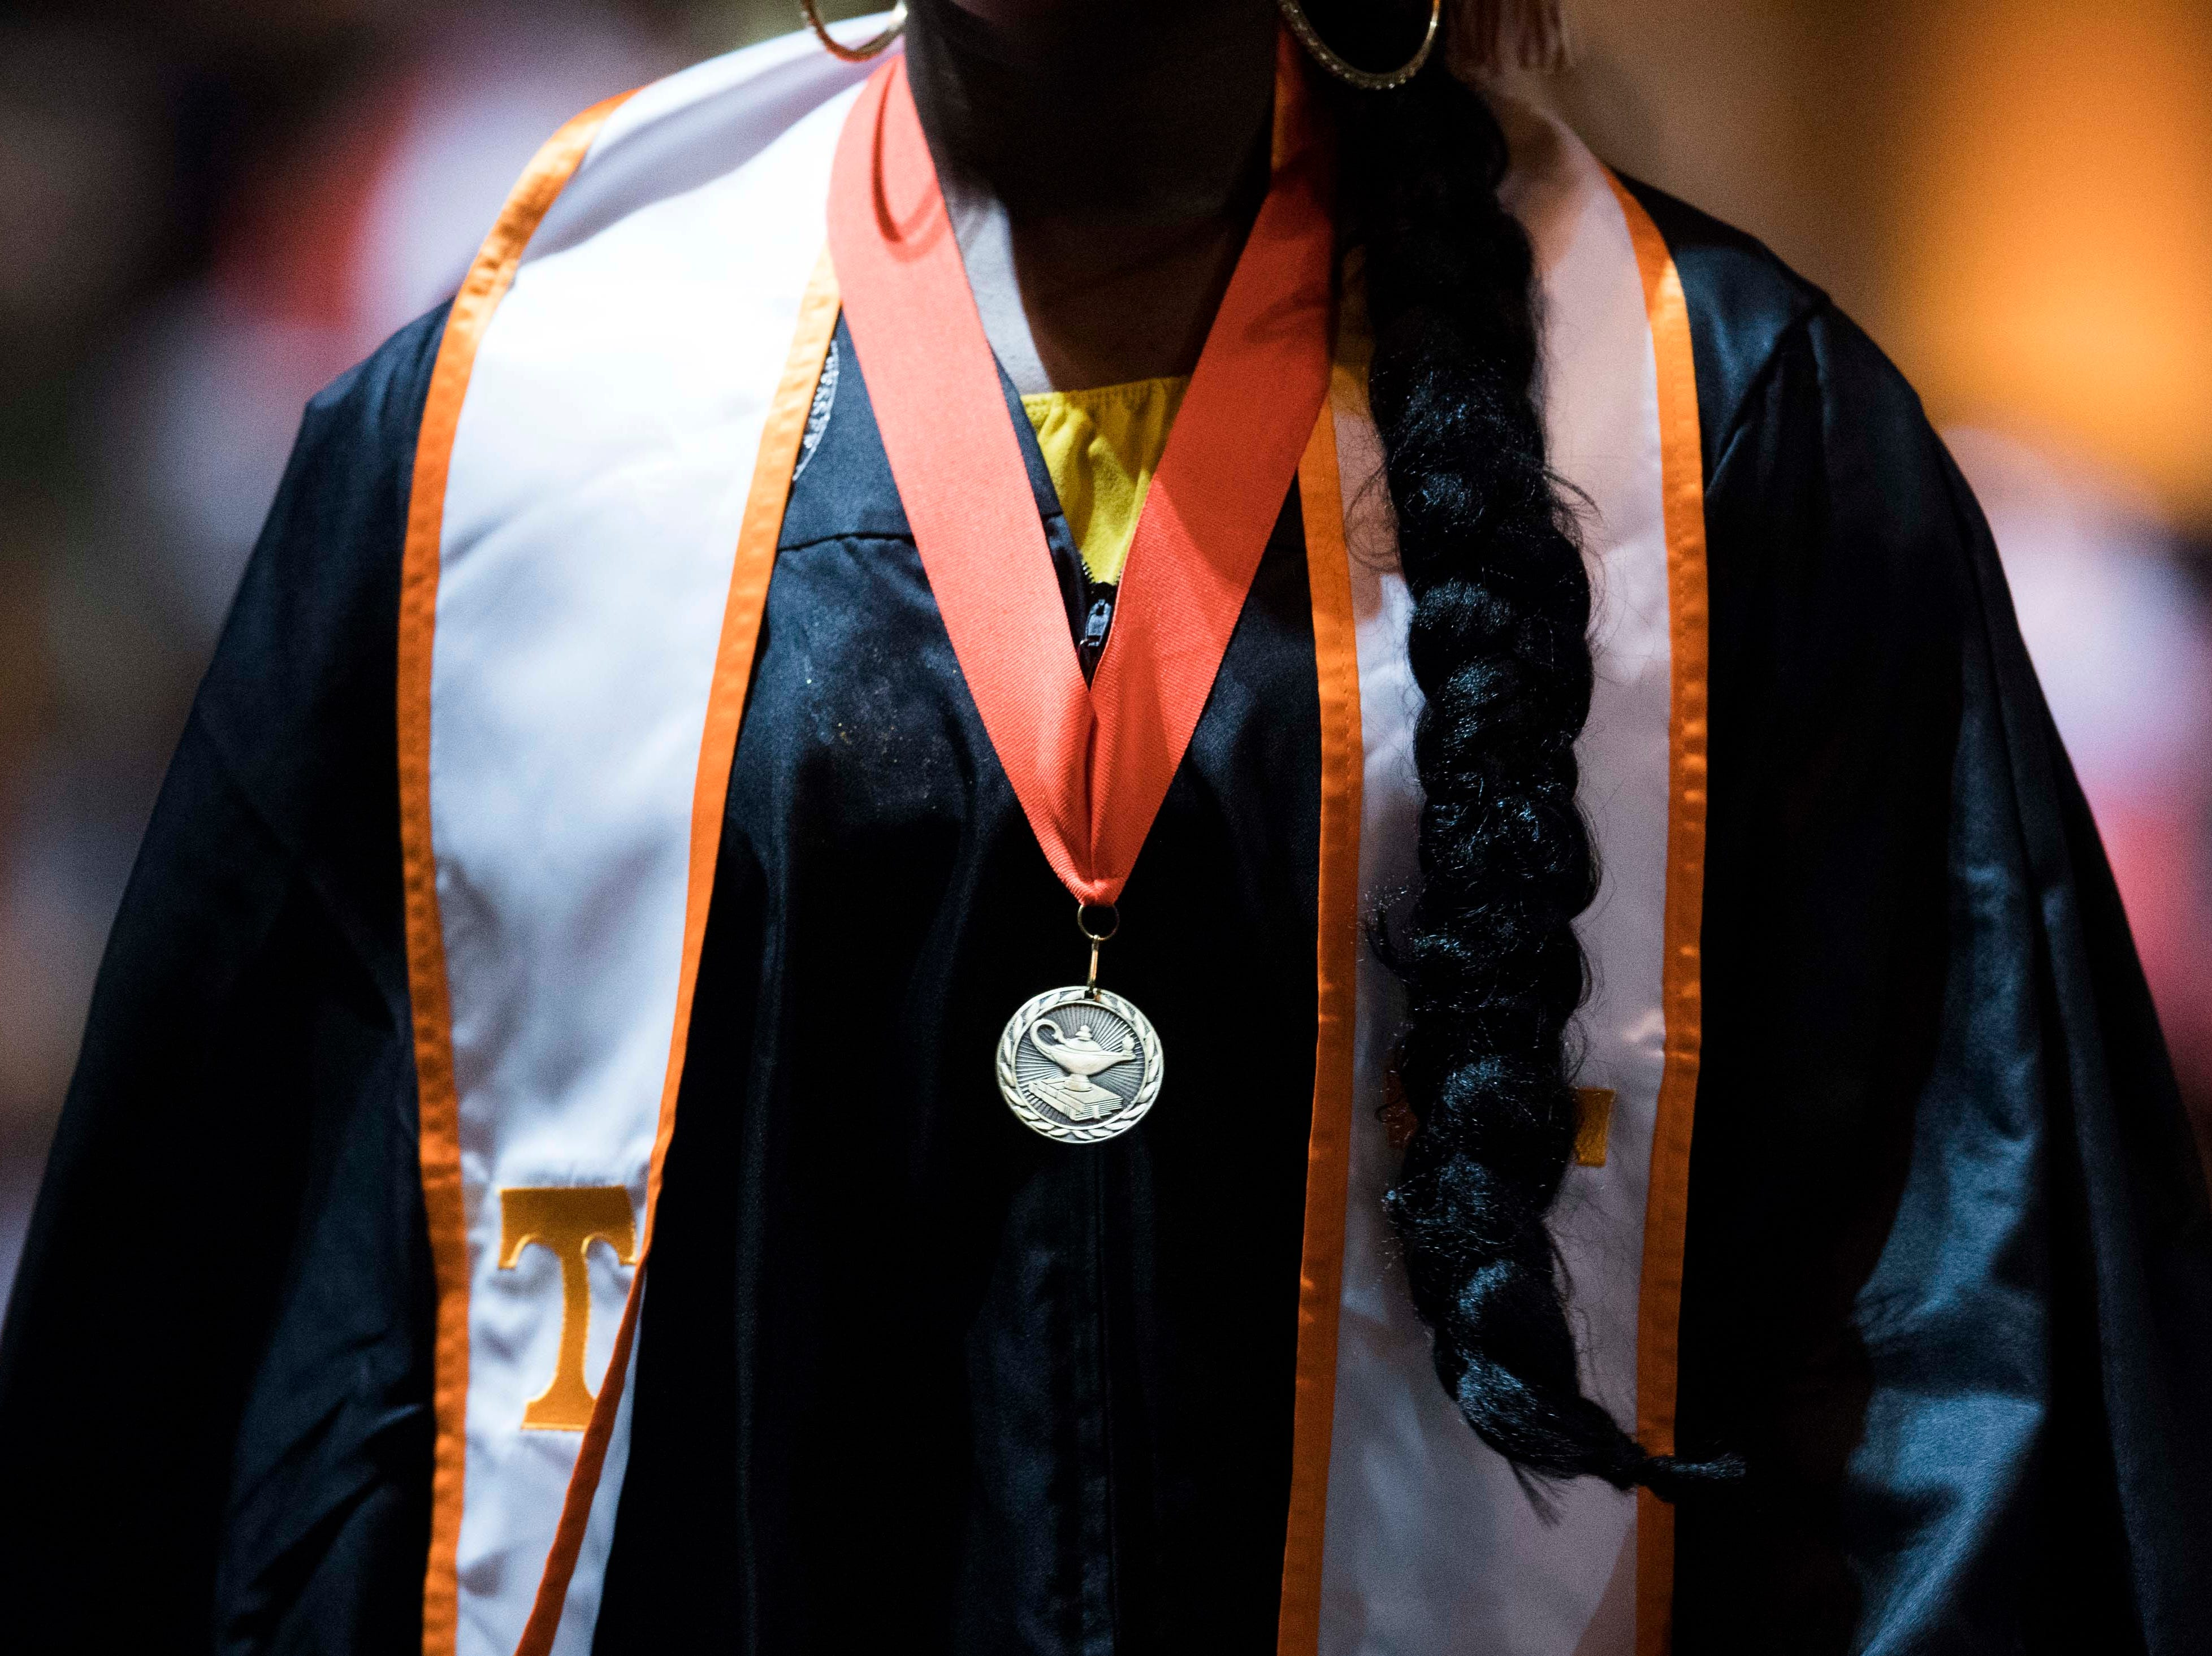 A student walks up the aisle after walking across the stage during University of Tennessee's College of Arts and Sciences commencement in Thompson-Boling arena in Knoxville, Saturday, May 11, 2019.